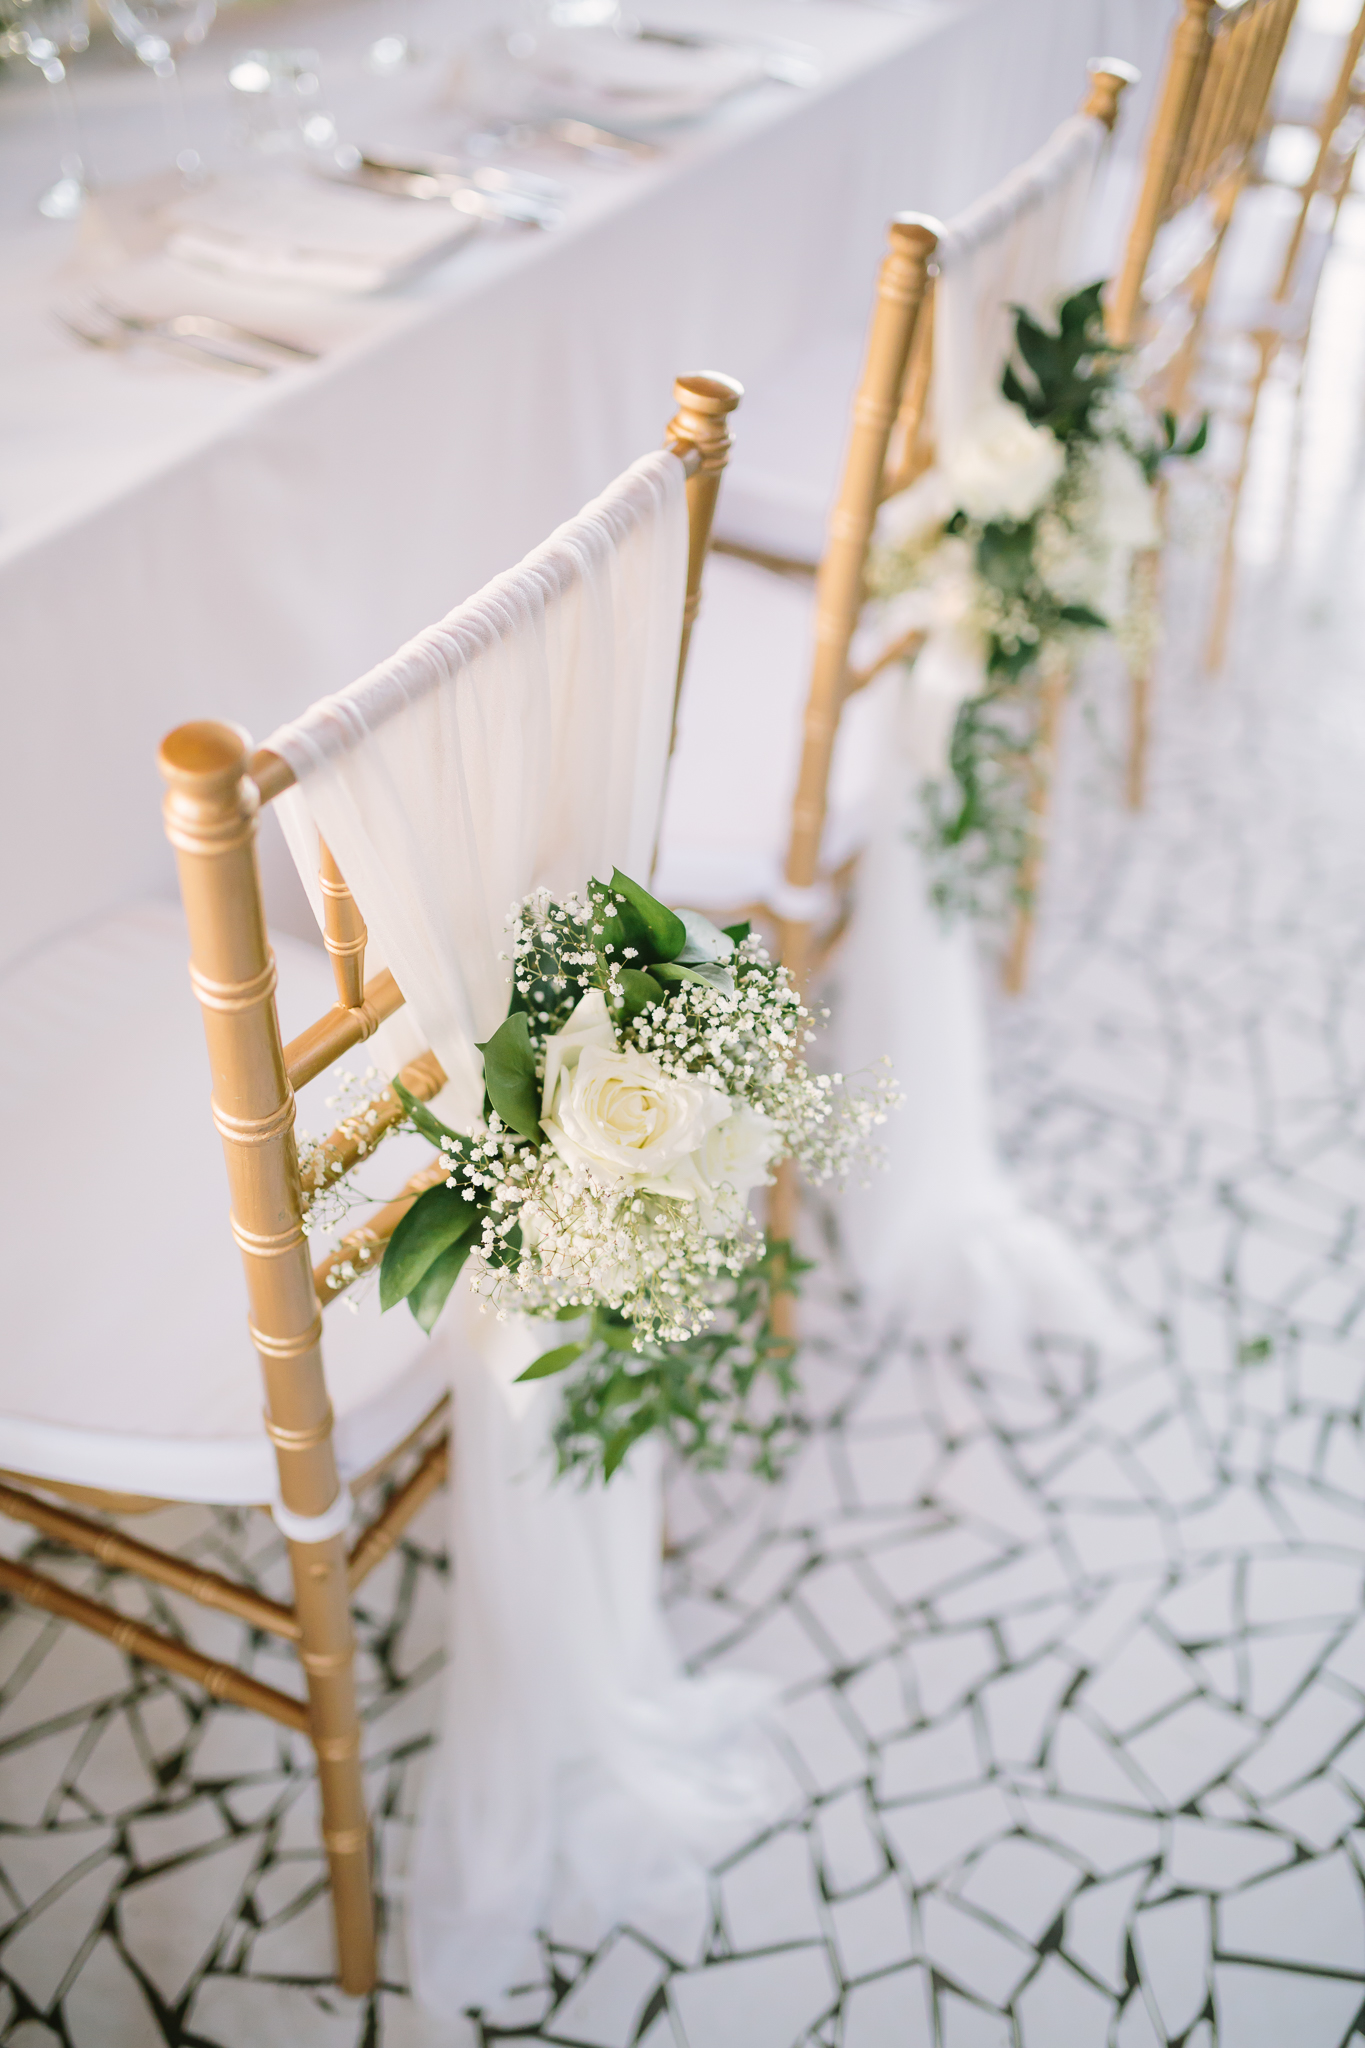 wedding seating - photo by DarinImages http://ruffledblog.com/this-bride-is-sharing-all-you-need-to-know-about-a-destination-wedding-in-thailand